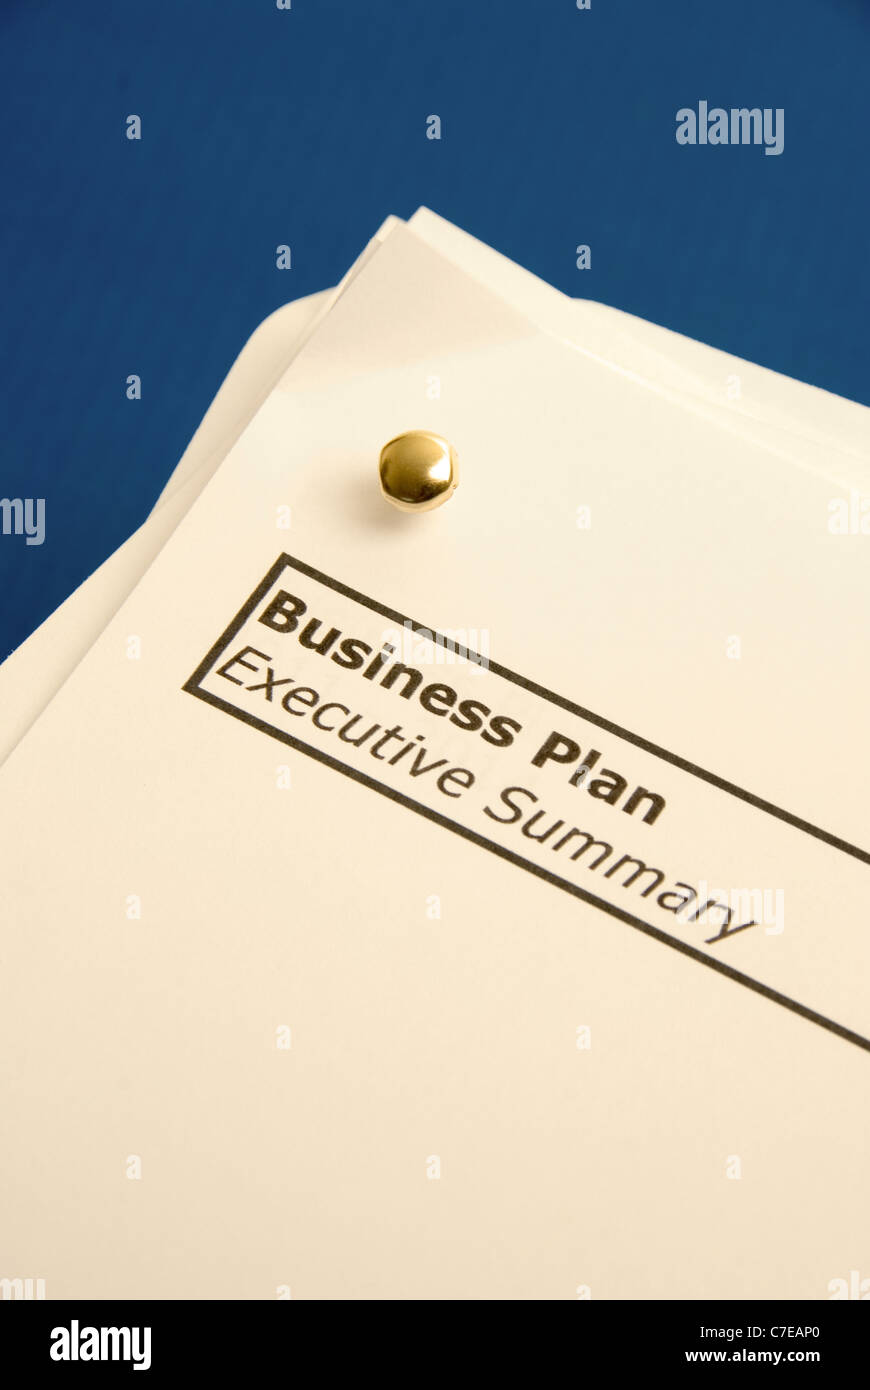 Business Strategy concept image - Business Plan - Stock Image